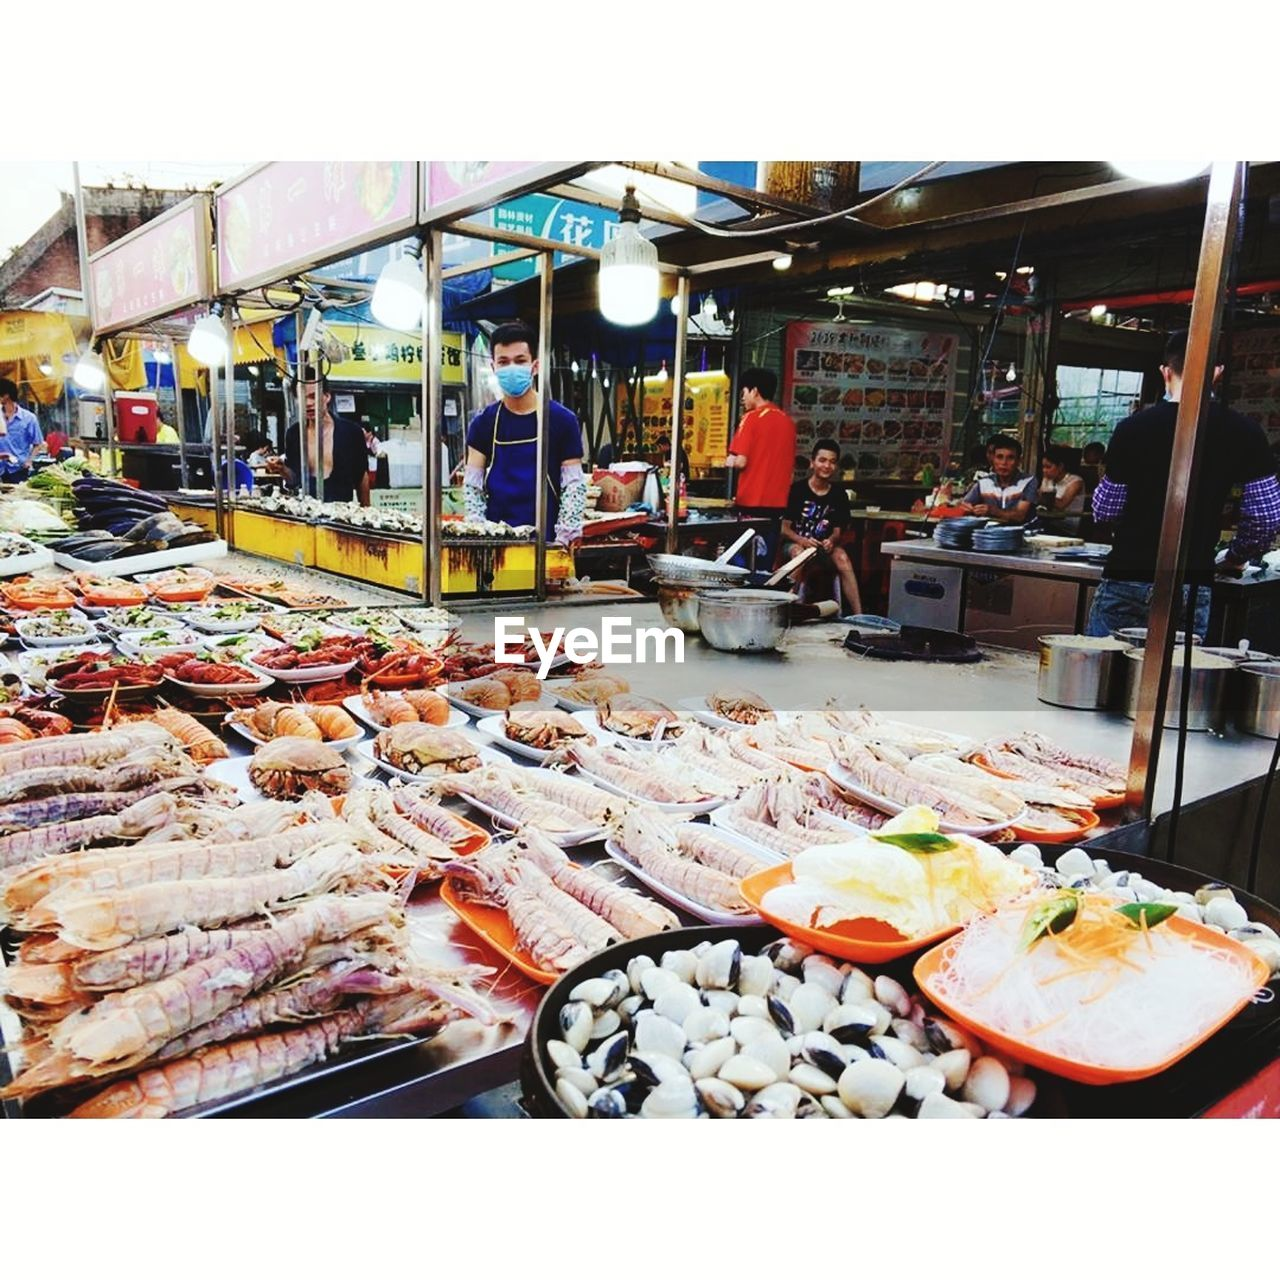 food, market stall, food and drink, real people, seafood, market, men, outdoors, choice, large group of people, day, freshness, people